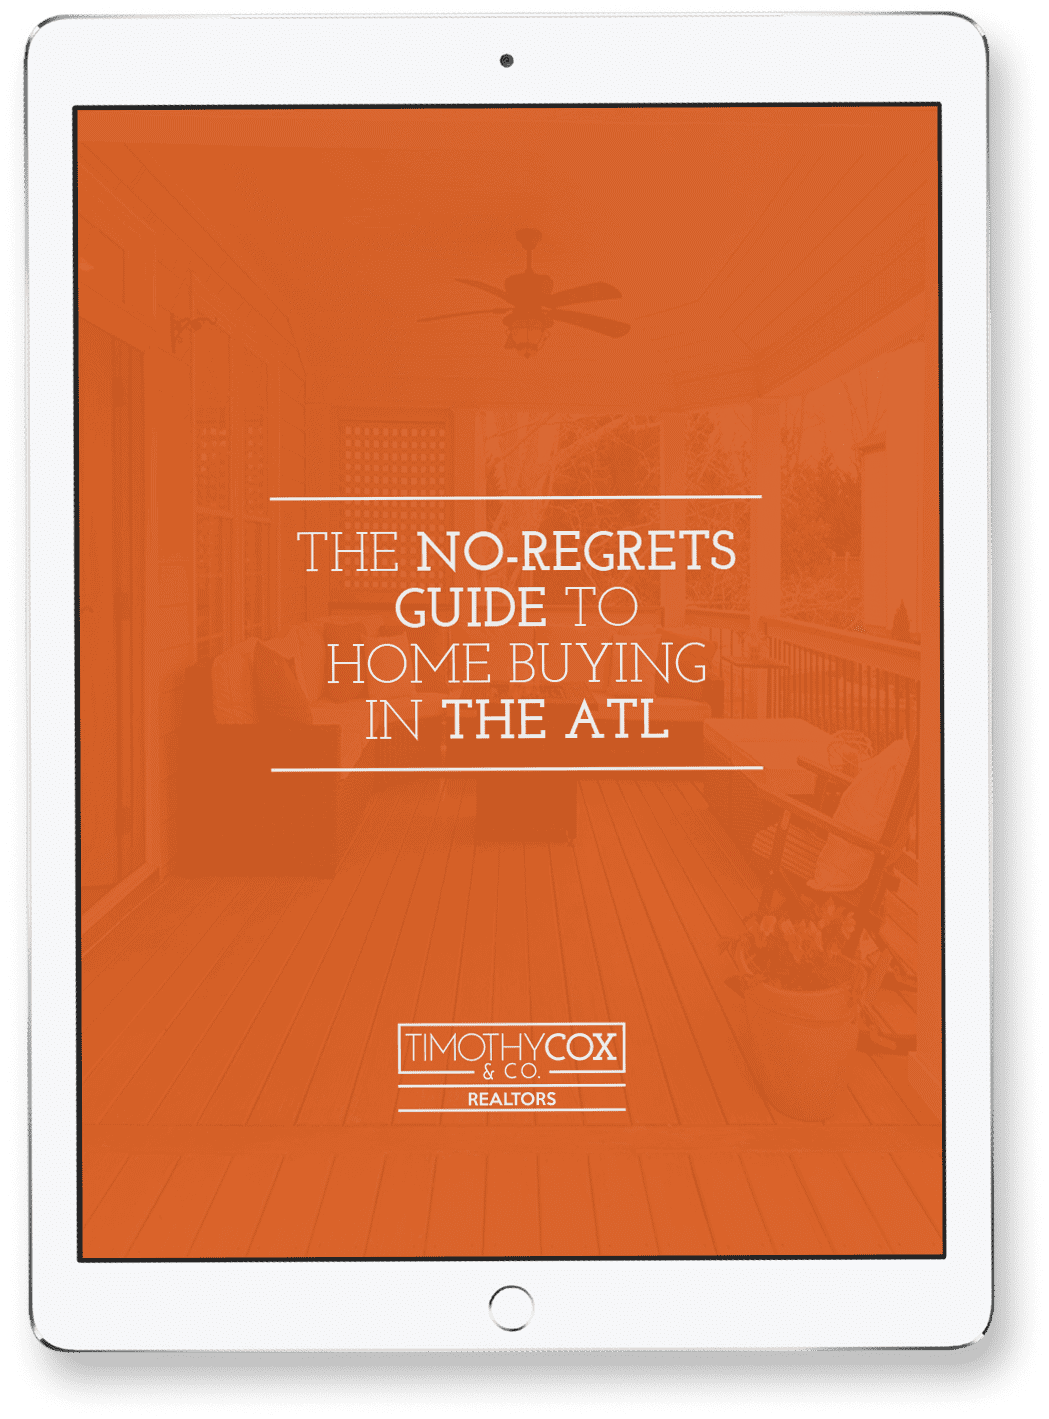 iPad Representing The No-Regrets Guide to Home Buying in The ATL